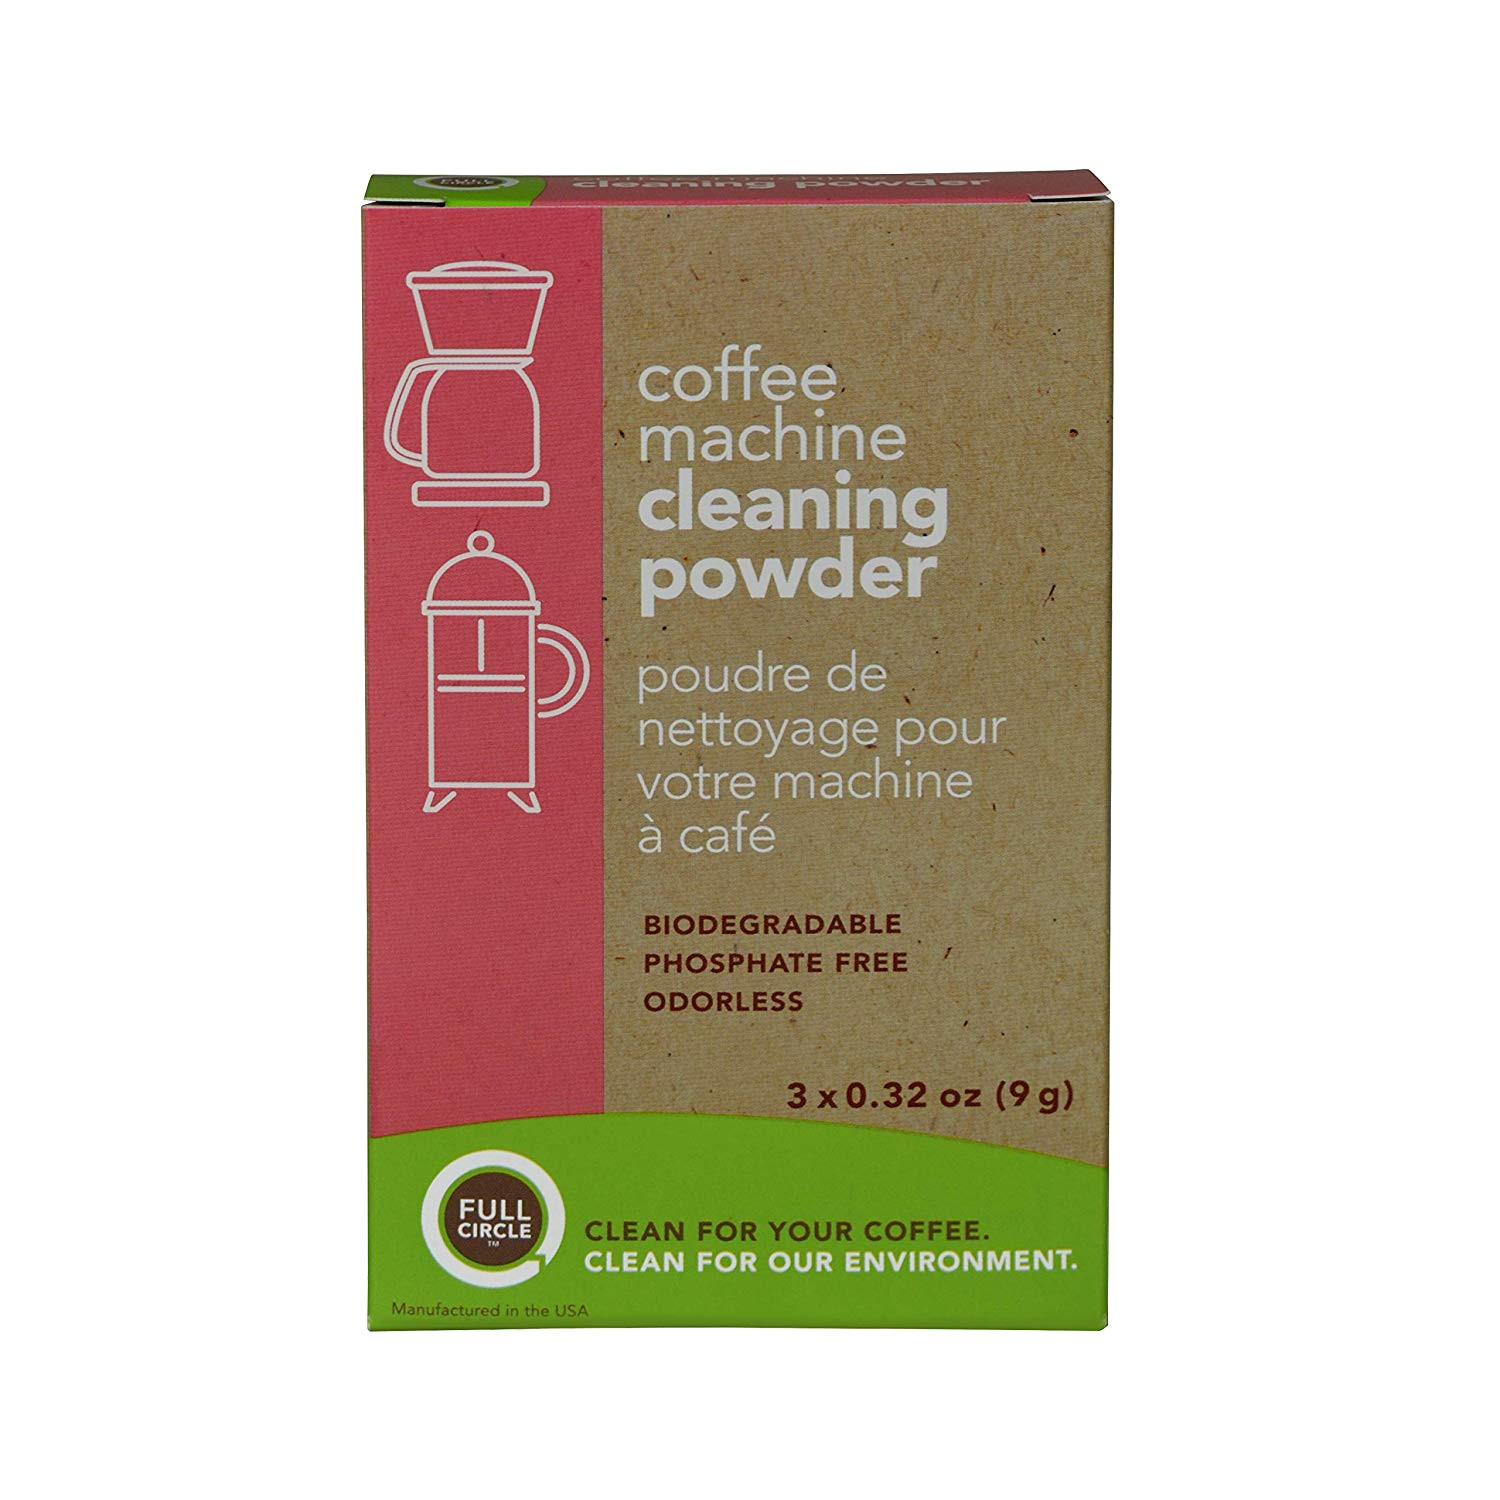 amazon com full circle coffee machine cleaner cleaning powder 3 single use packets safe on keurig delonghi nespresso ninja hamilton beach mr coffee